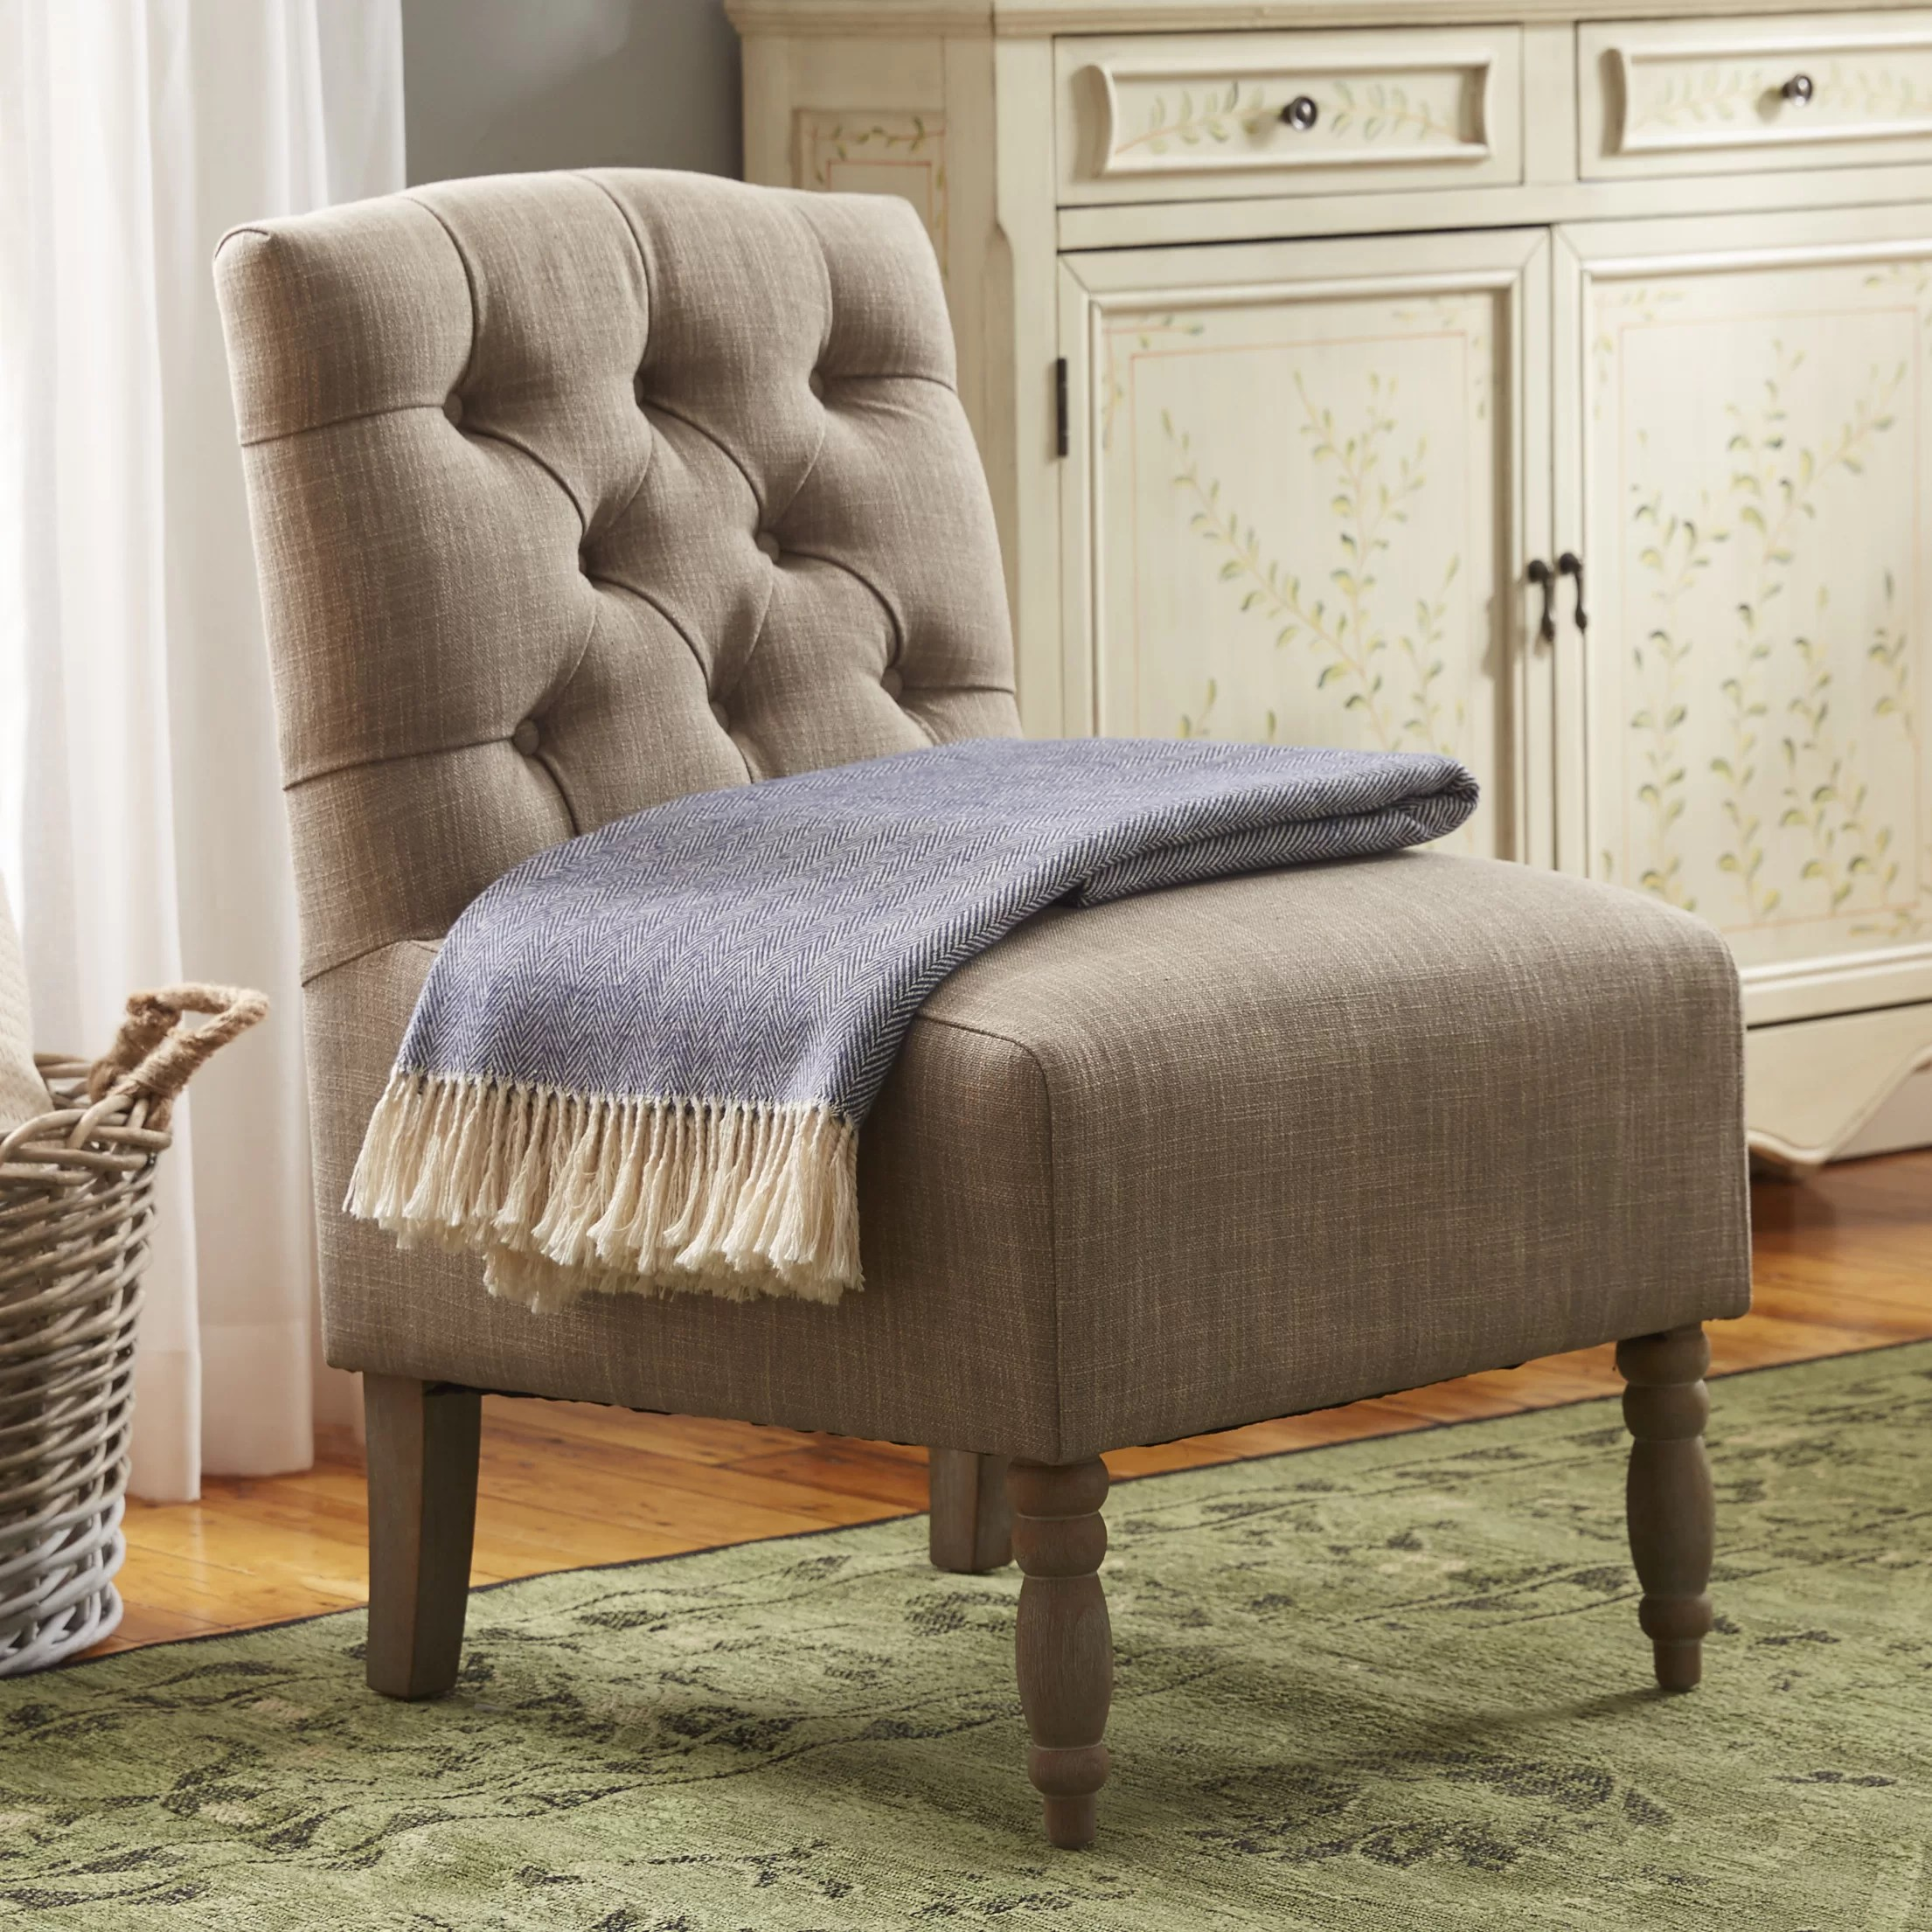 Tufted Slipper Chair Madison Park Madison Park Lola Tufted Slipper Chair